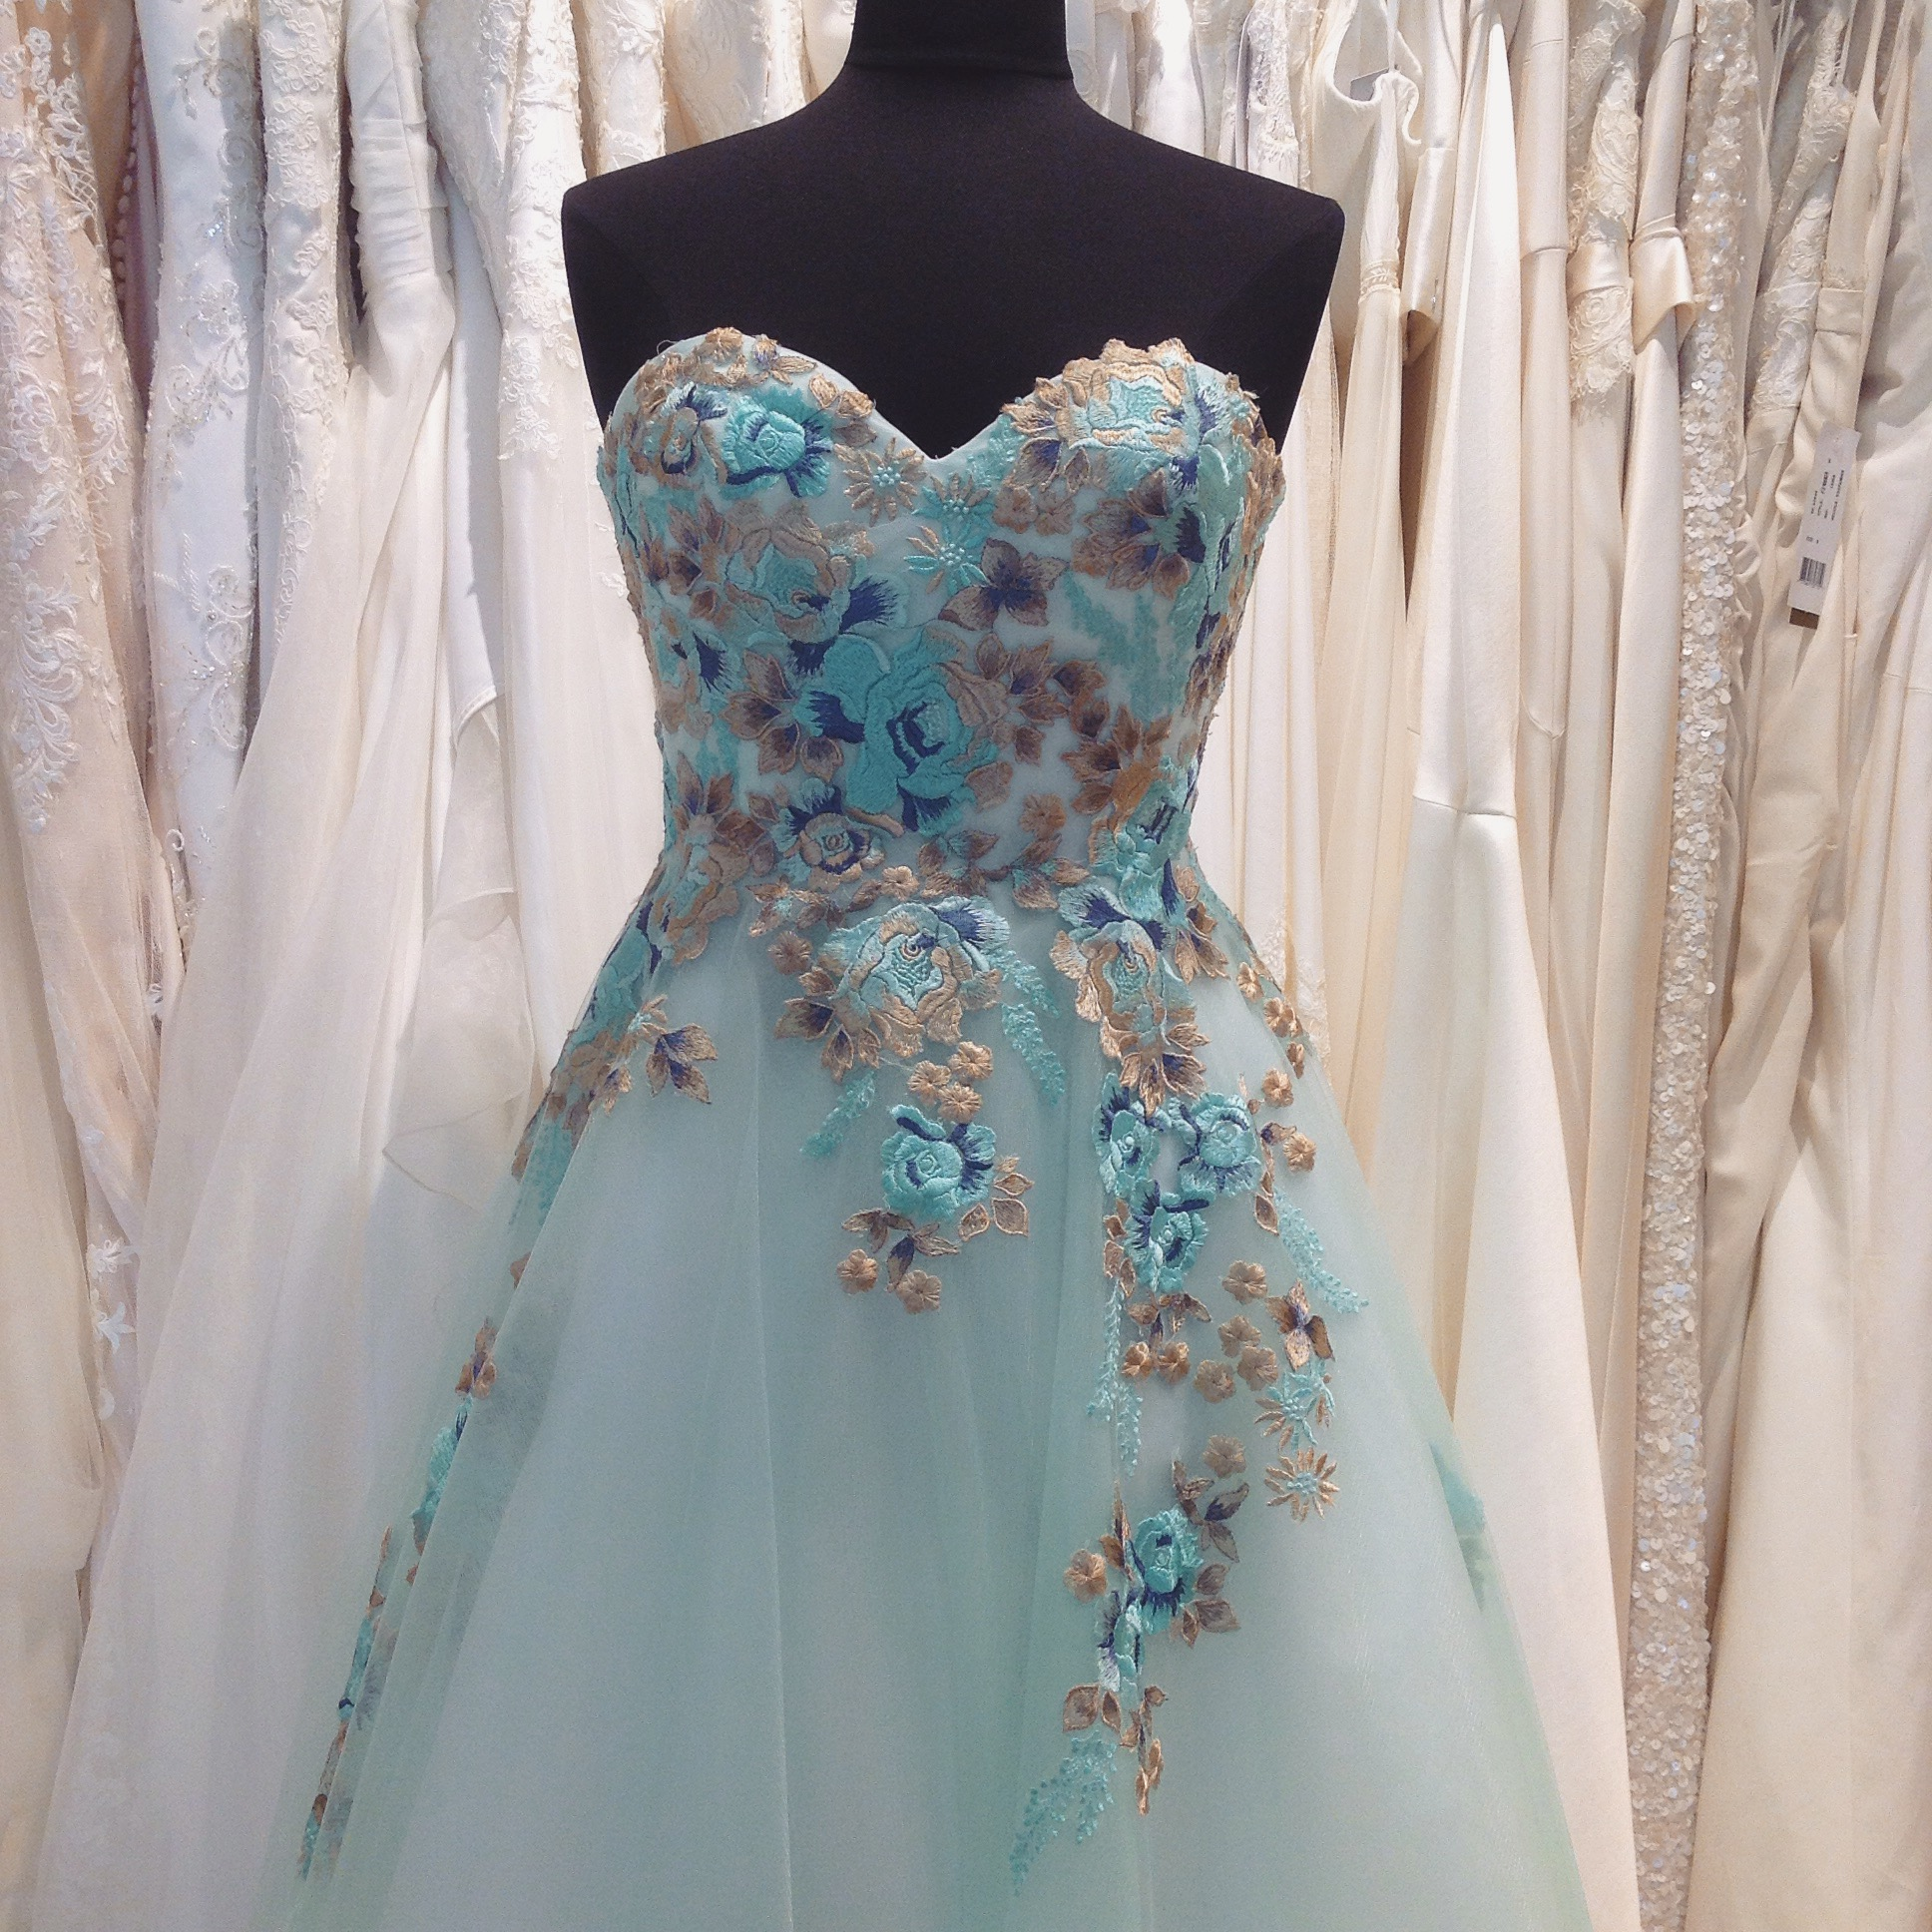 Blue tulle with blue and gold lace applique wedding dress